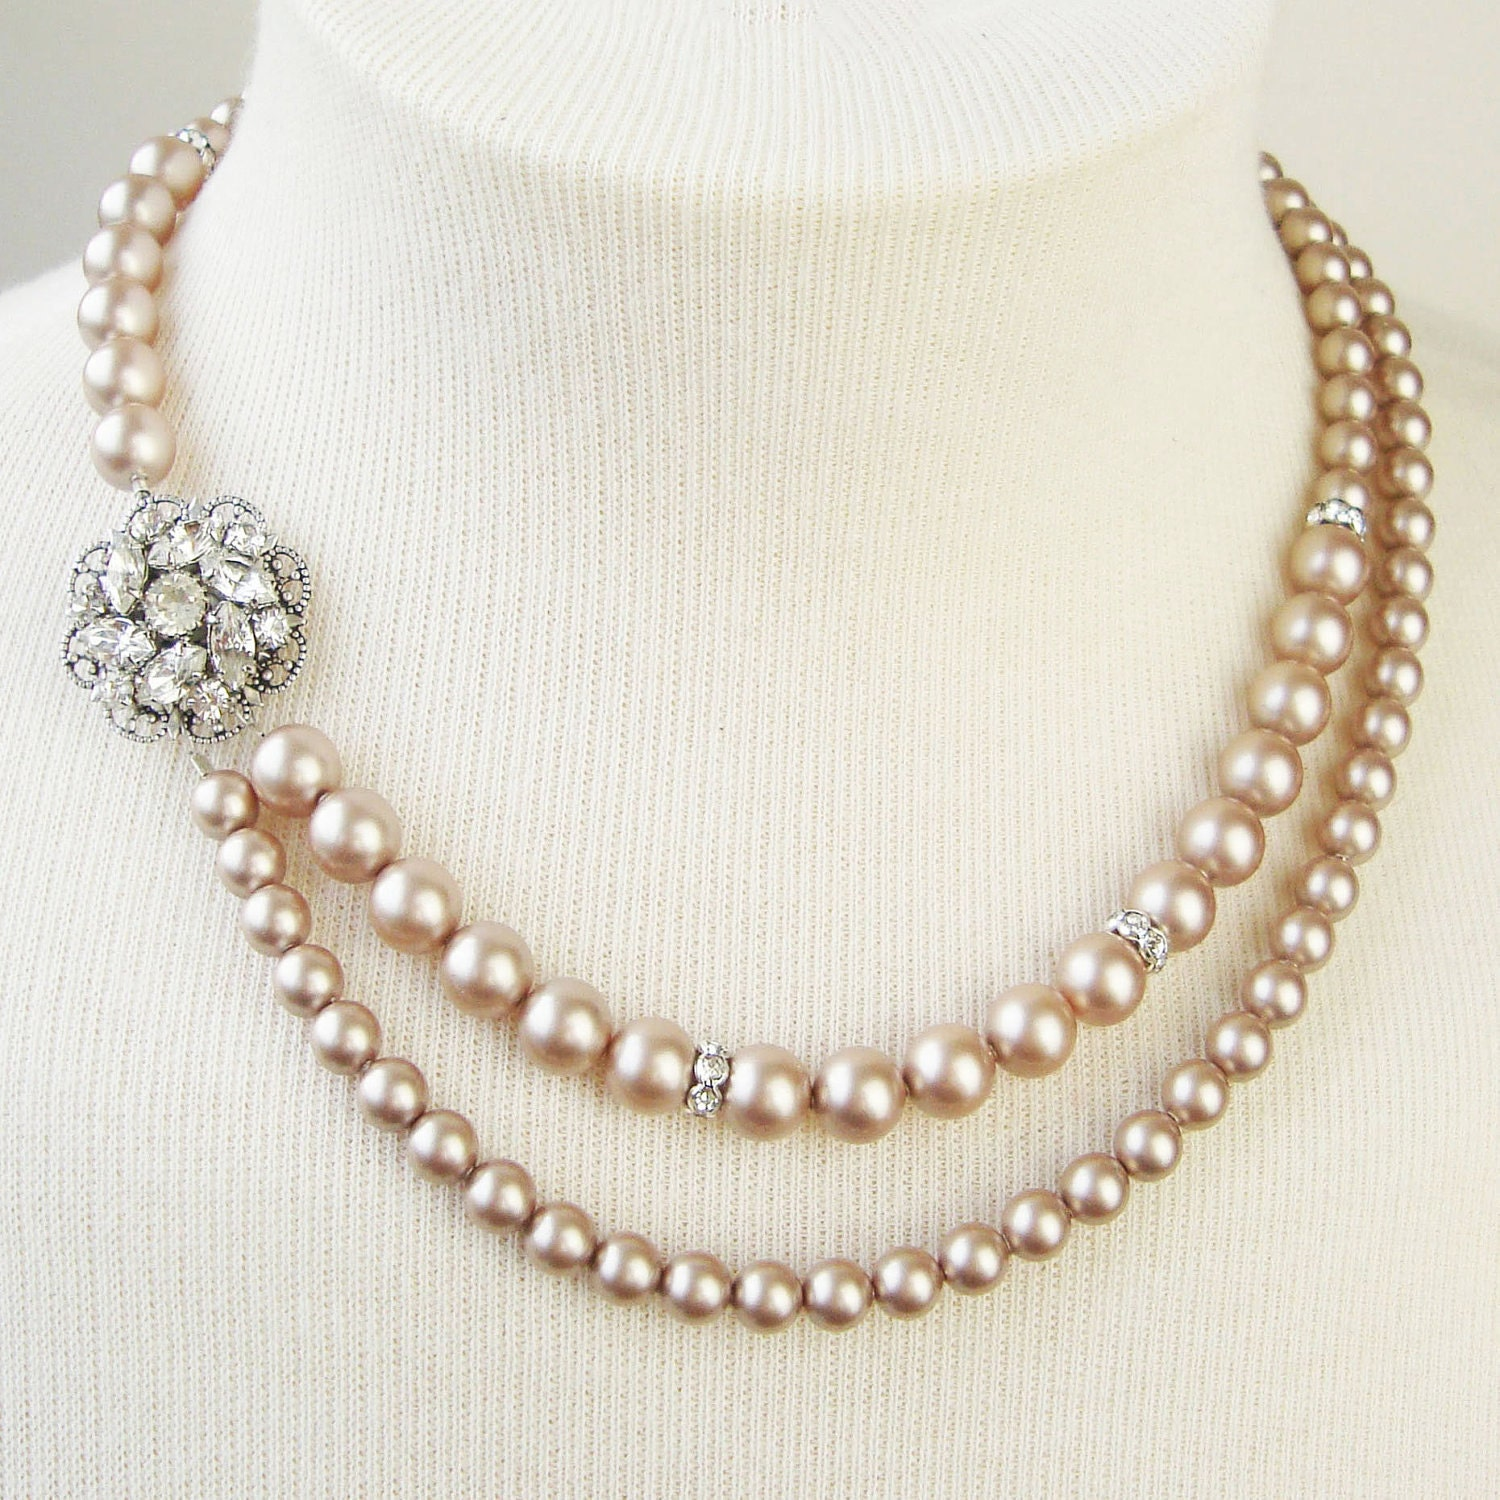 Champagne pearl bridal necklace champagne wedding necklace for Jewelry for champagne wedding dress